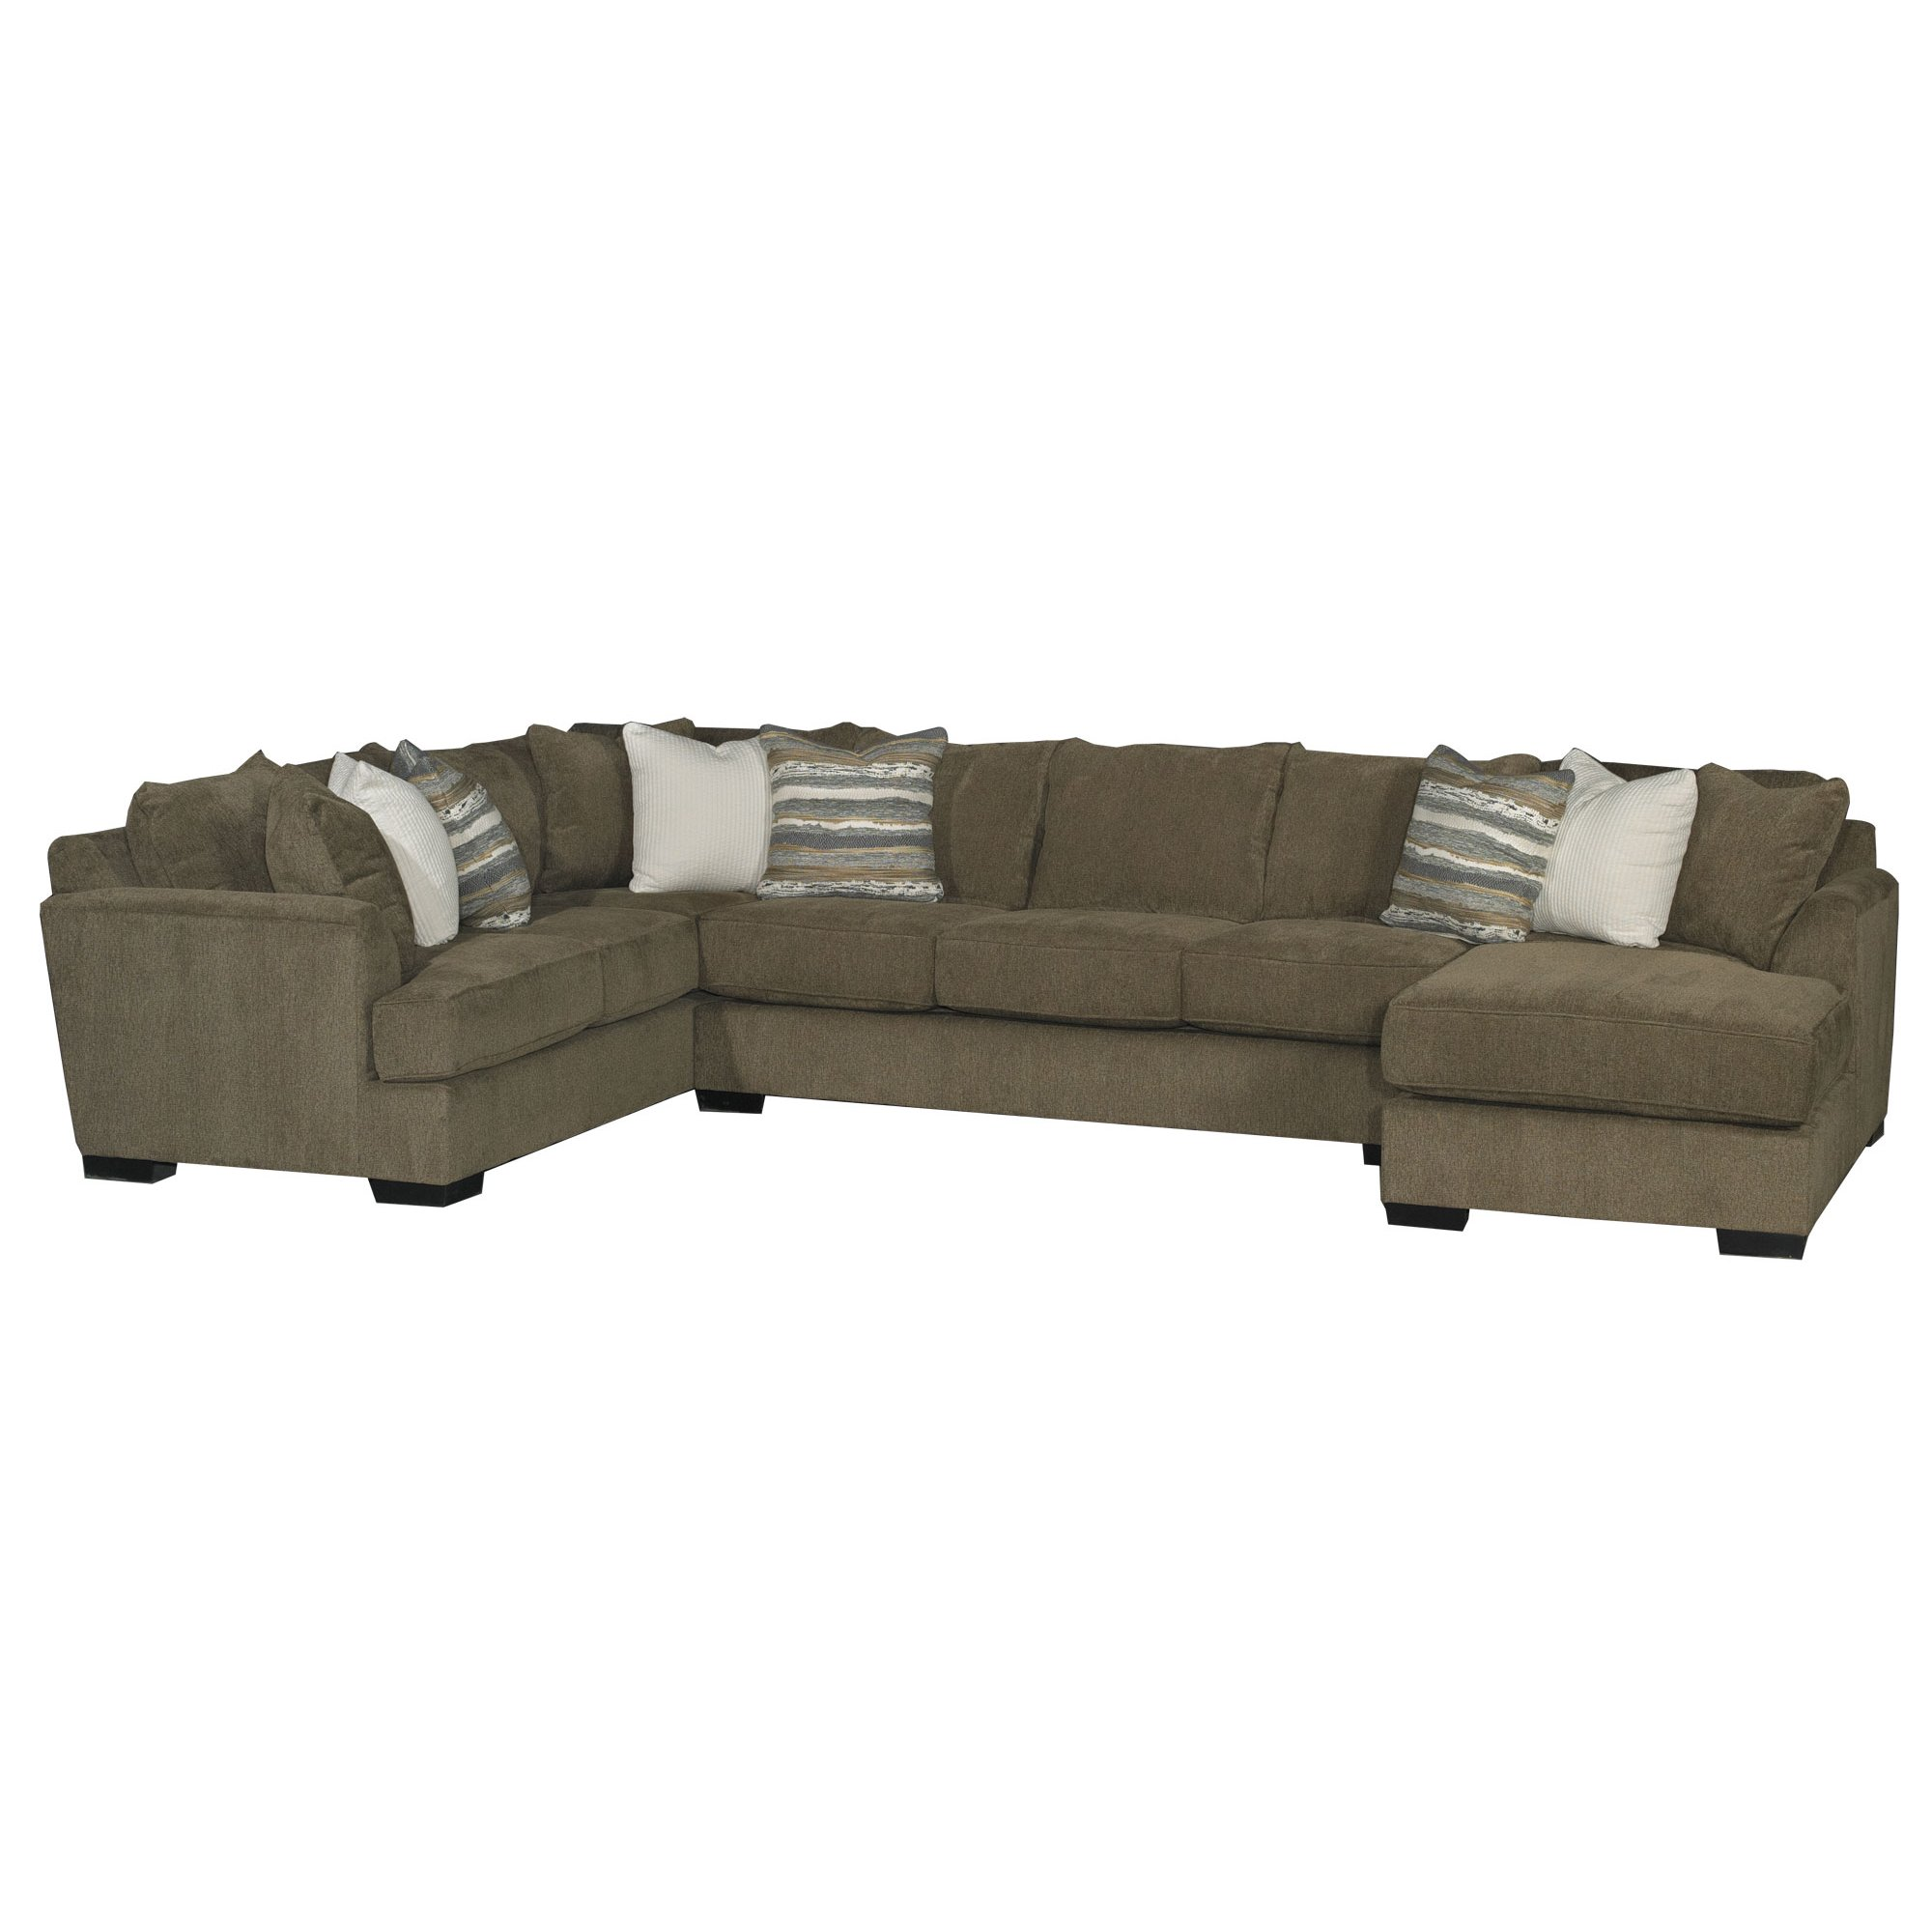 willey emerson casual piece furniture sectionals living fabric rc sofa jsp slate contemporary sectional gray rcwilley view room